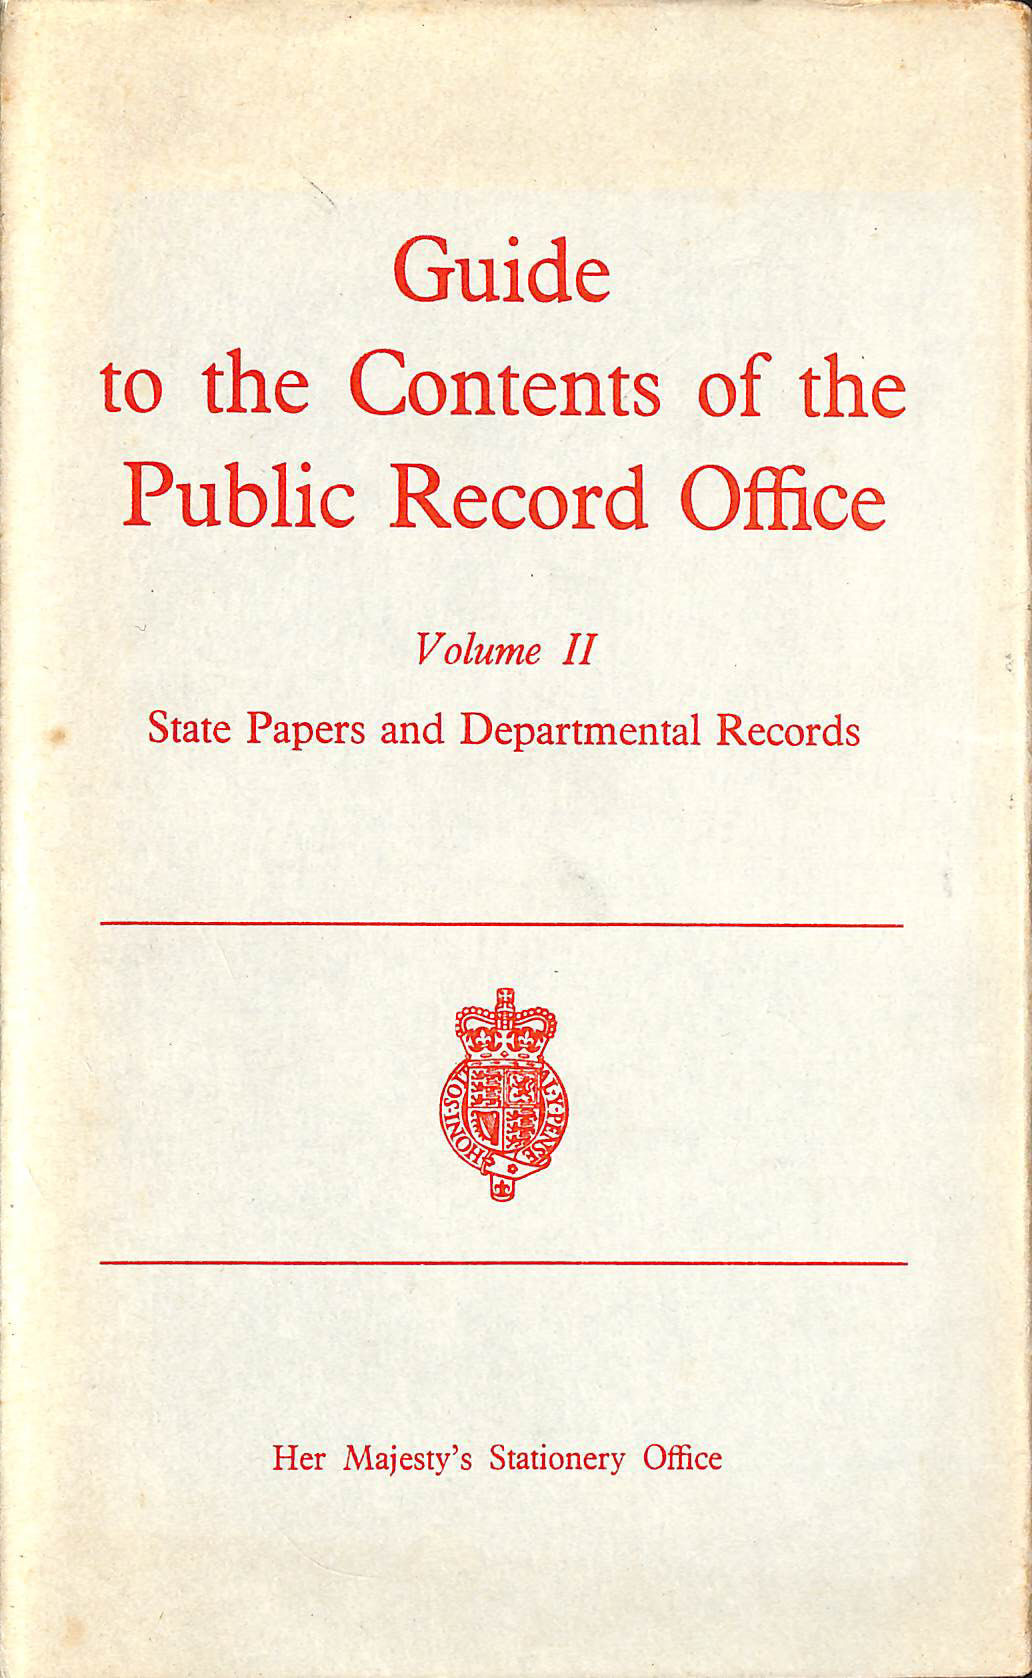 Image for Guide to the Contents of the Public Record Office Volume II: State Papers and Departmental Records